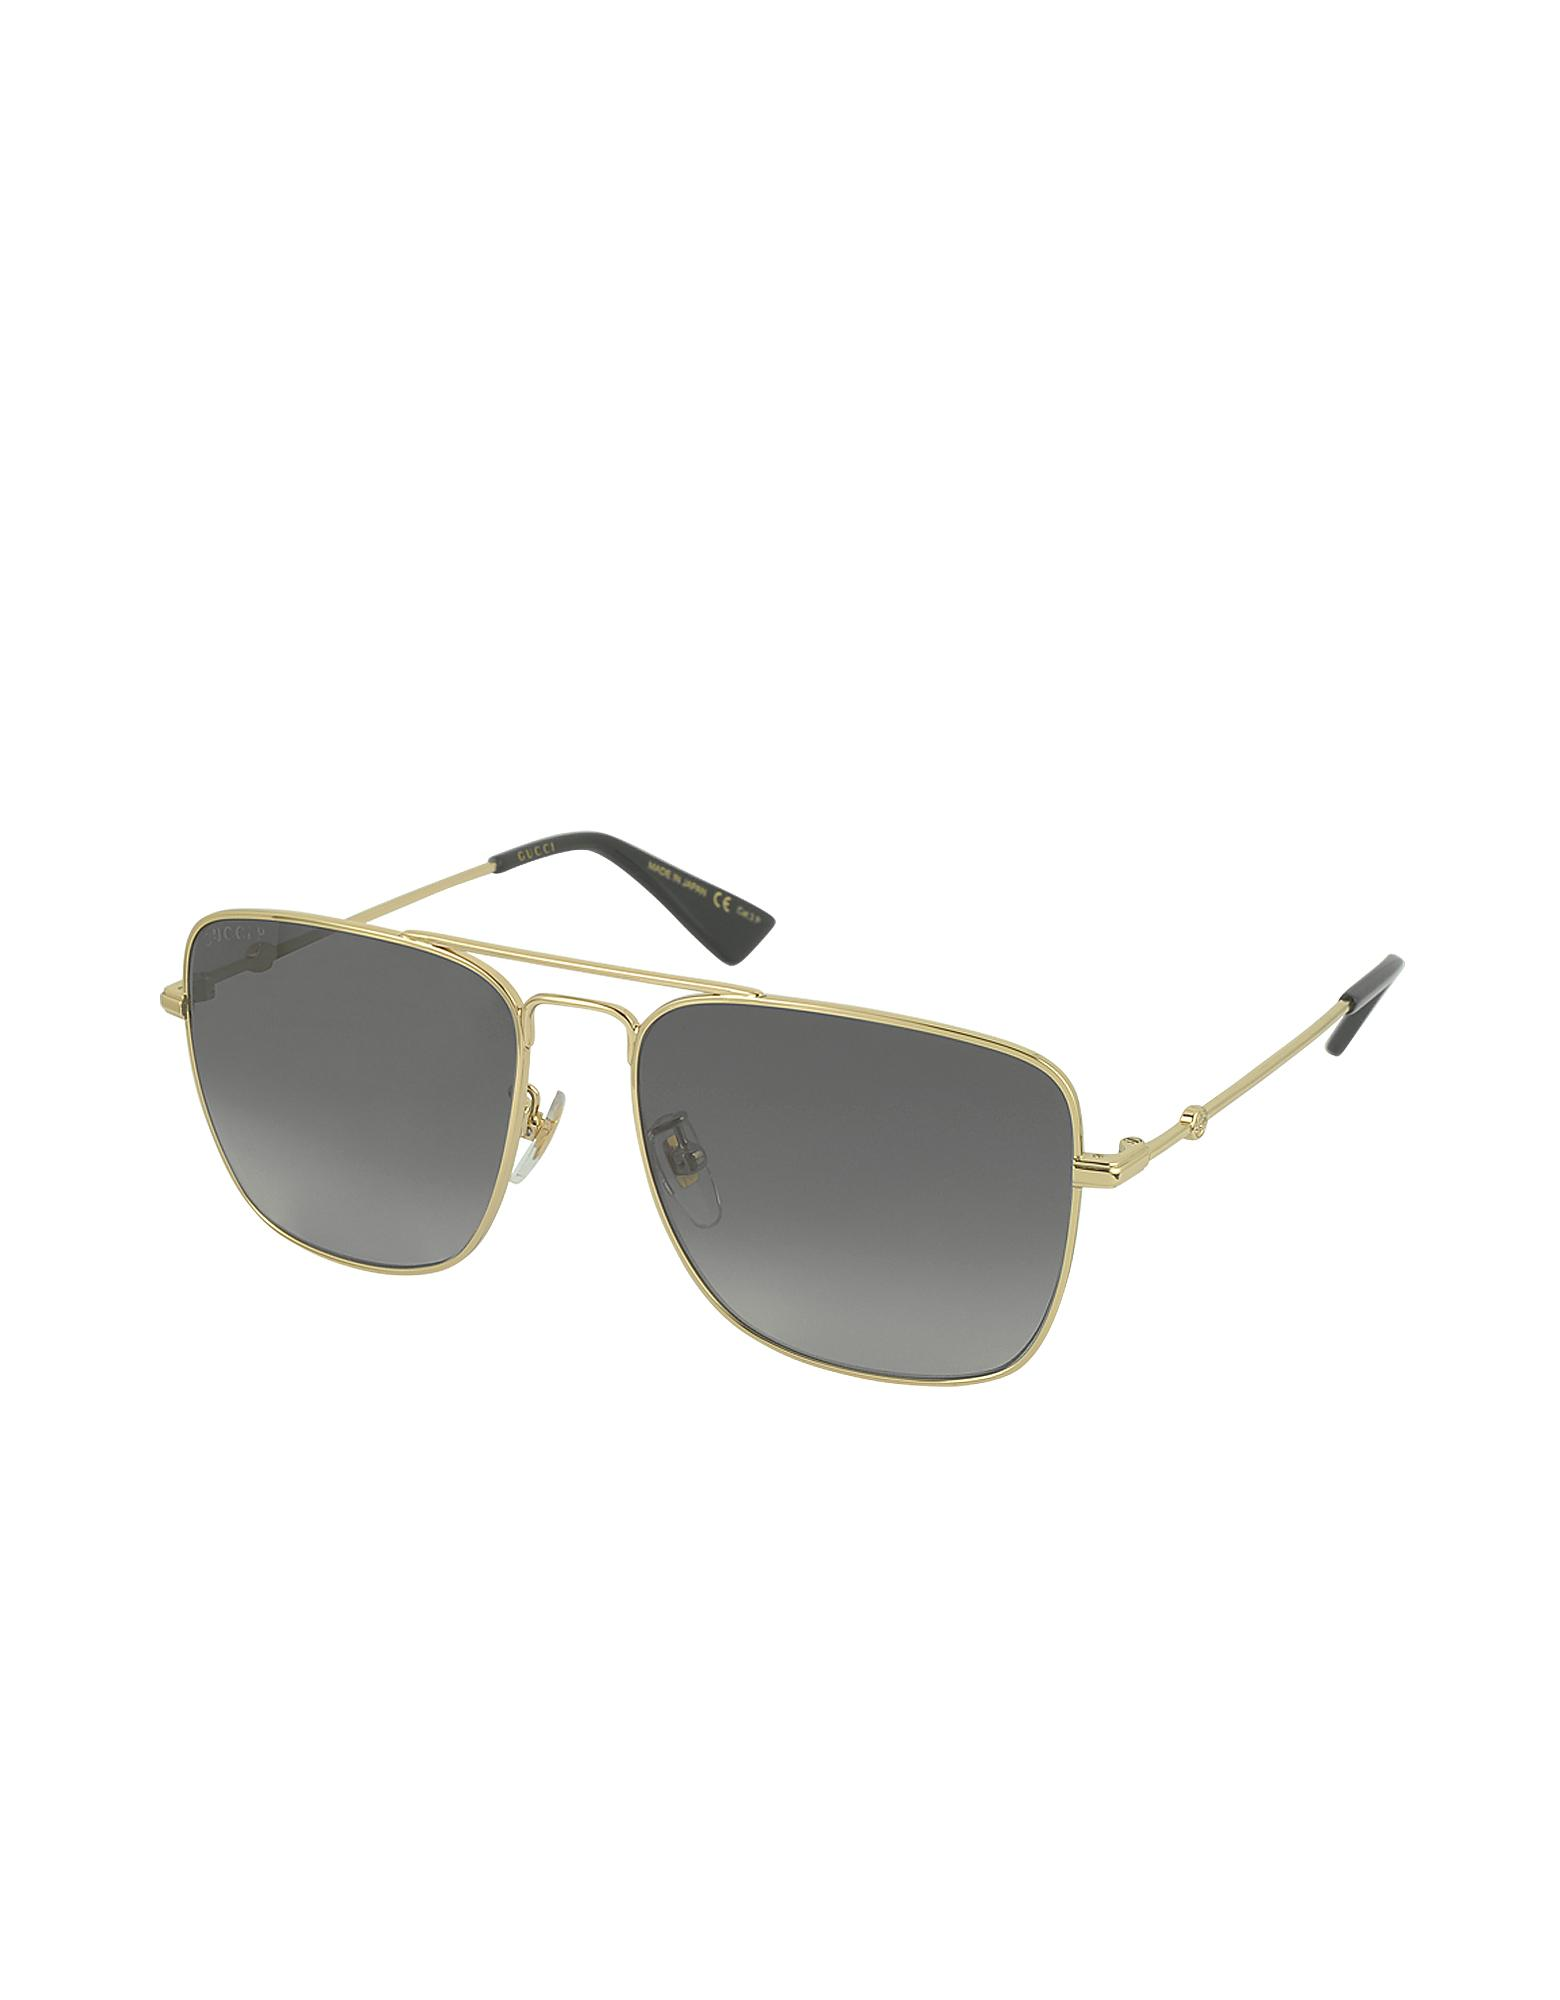 Lyst - Gucci GG0108S 006 Gold Metal Square Aviator Men s Polarized  Sunglasses in Metallic for Men 8cce3a3a6c